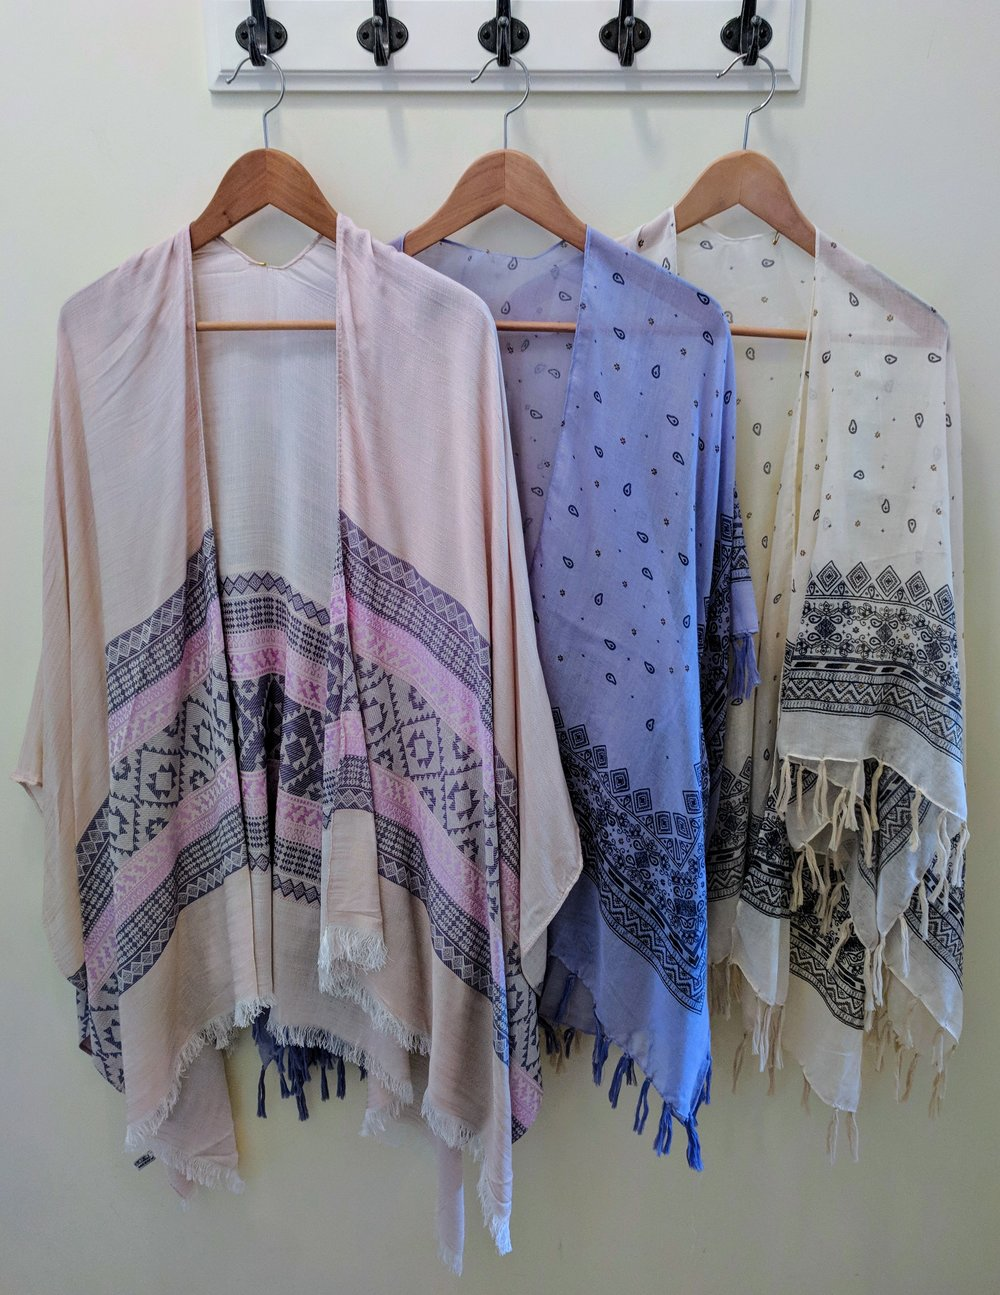 Lavender Woven Moroccan Kimono $24 Periwinkle and Ivory Kimono with tassels $21